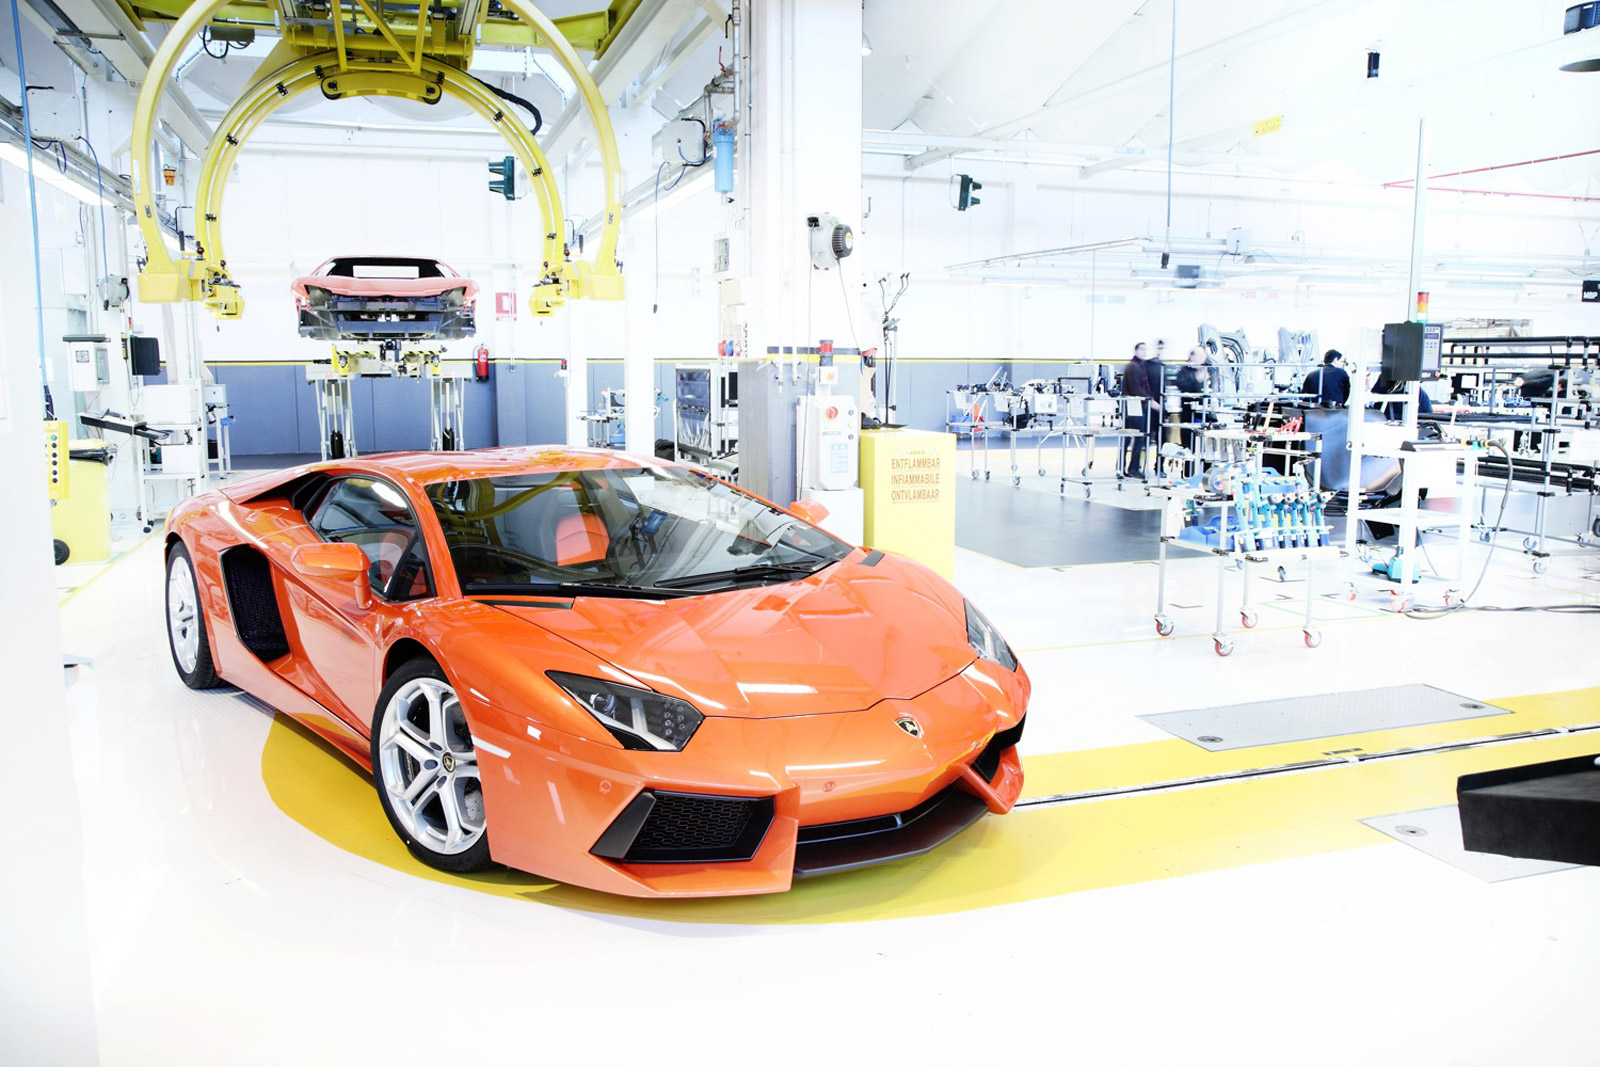 Video Tour Of The Lamborghini Factory And Museum